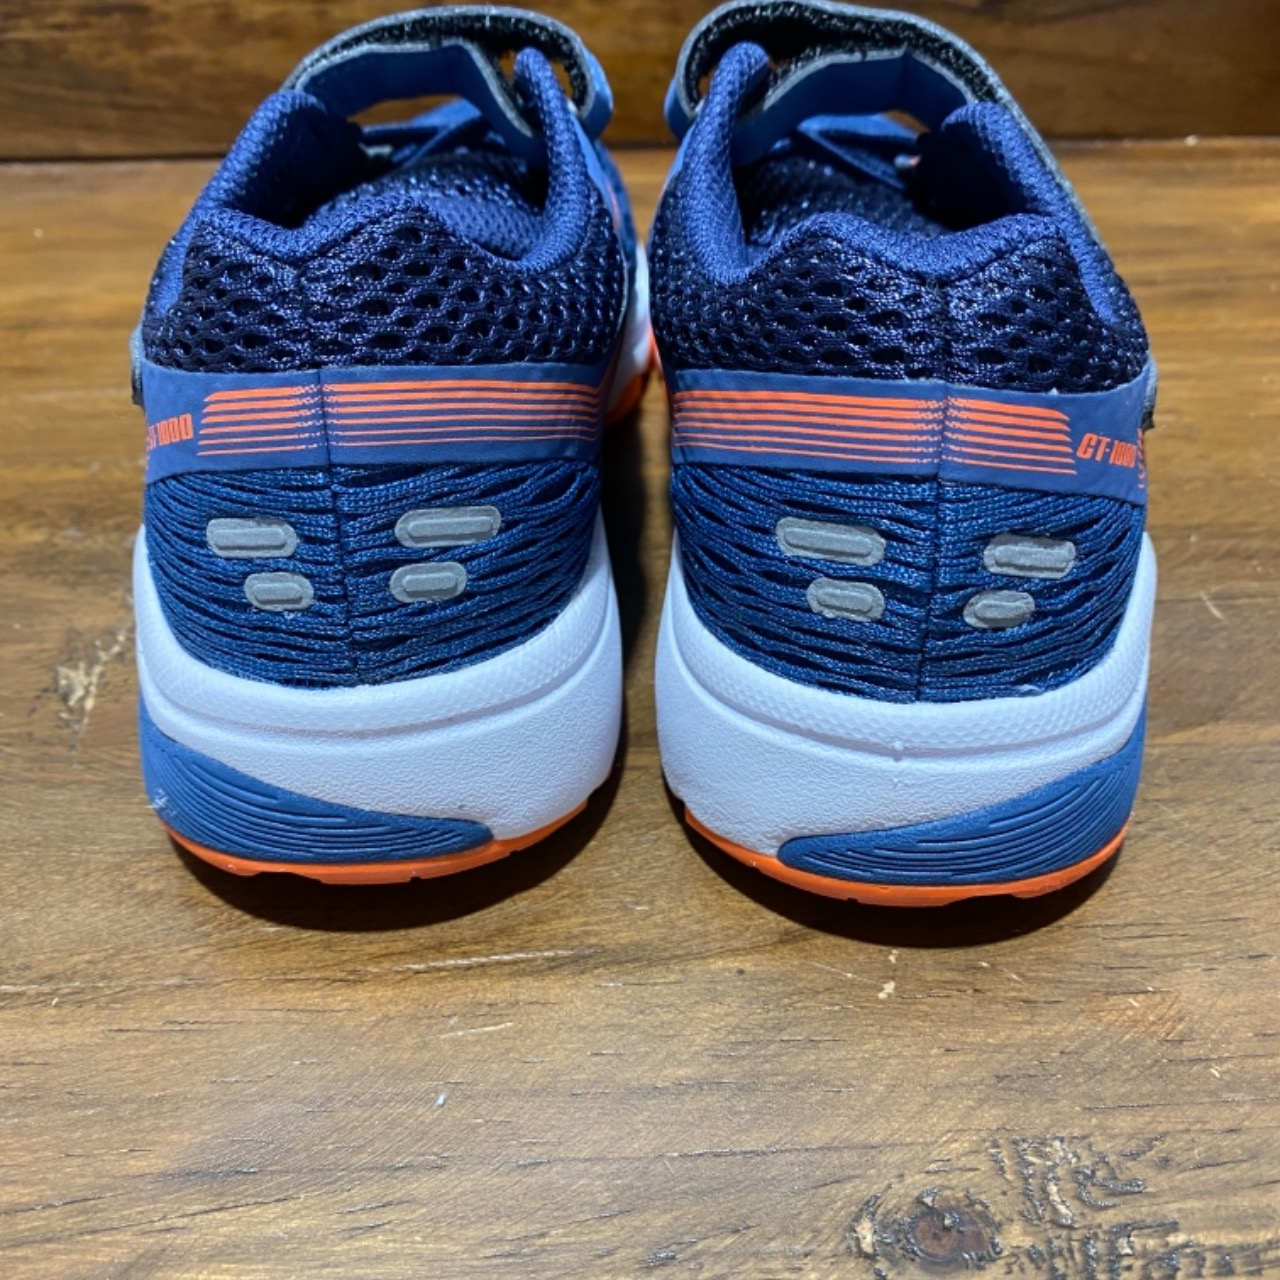 NEW WITHOUT TAGS KIDS ASICS SHOES Size 13  (US Size 1 EUR Size 32.5)